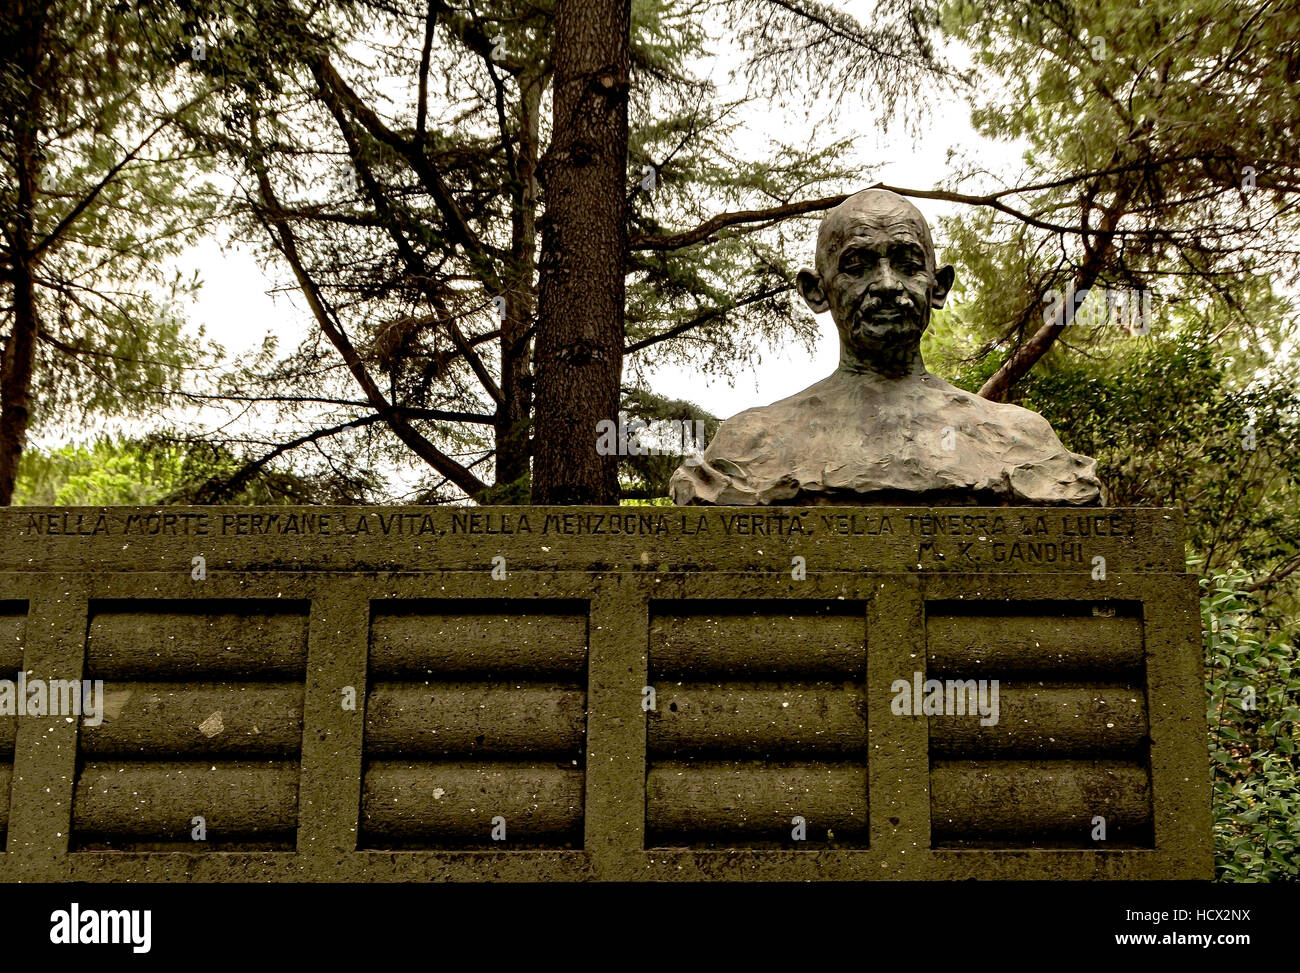 The Mahatma Gandhi Memorial statue in the shaded and peaceful  Piazza Gandhi in the EUR district of Rome. - Stock Image